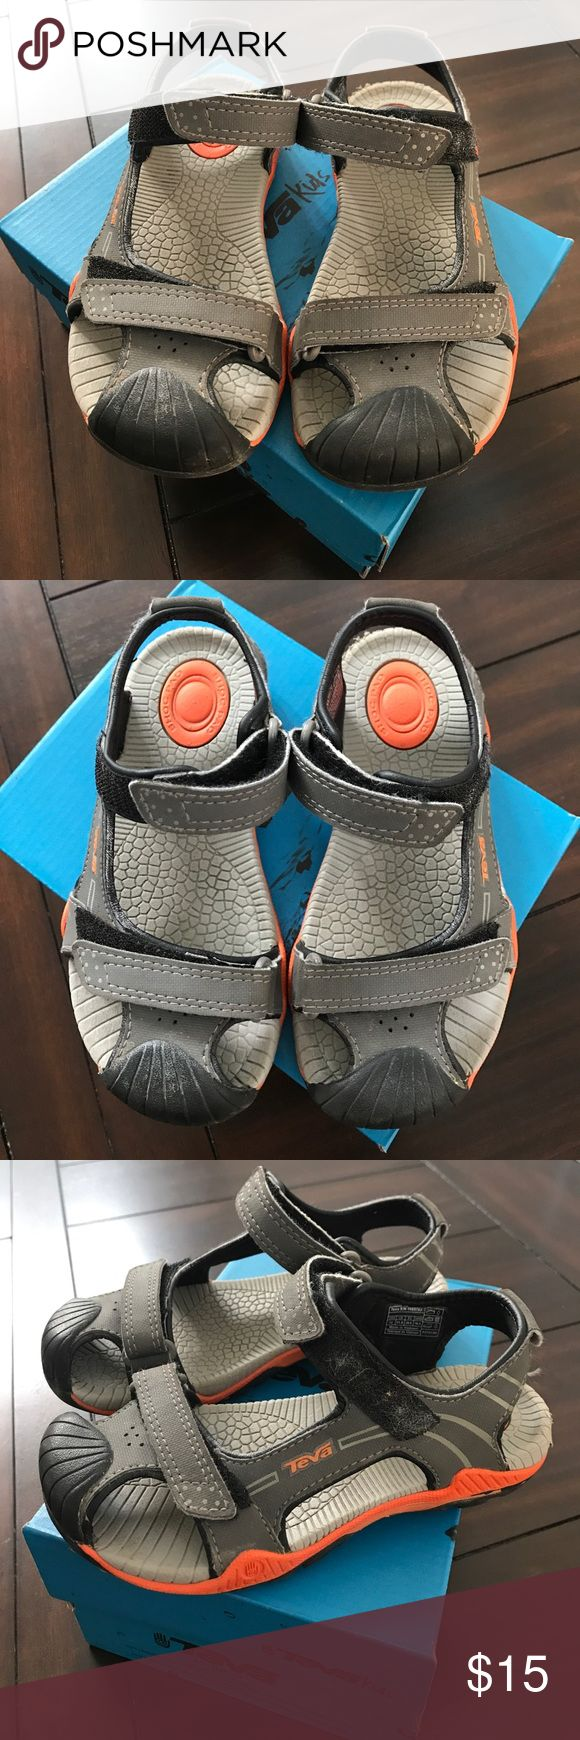 ❣️TEVA KIDS❣️BOYS SANDALS❣️ ❣️TEVA KIDS❣️BOYS SANDALS❣️GOOD CONDITION❣️BOY TODDLER SIZE 12❣️10%OFF WHEN YOU BUNDLE❣️ Teva Shoes Sandals & Flip Flops